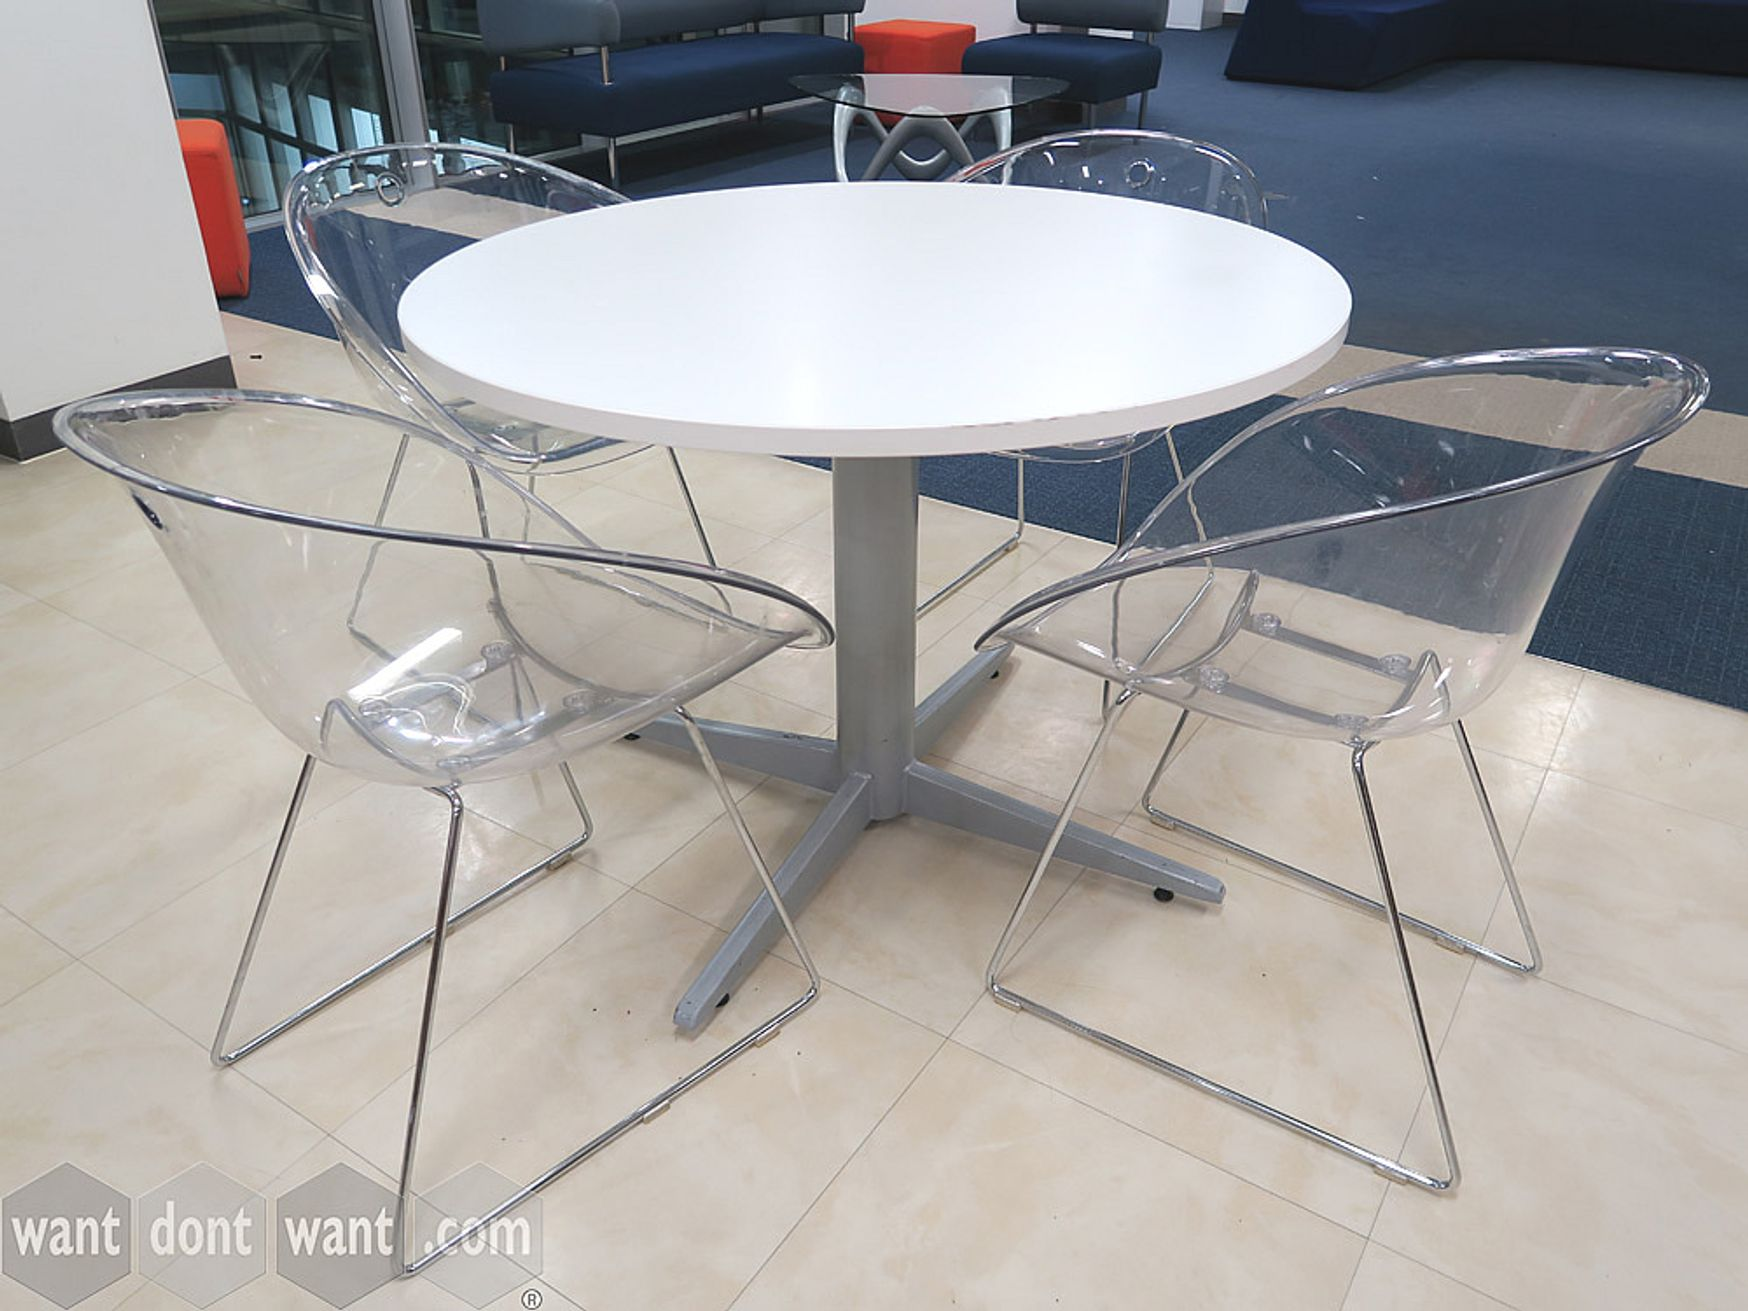 Used White Circular Table with 4 Star Base